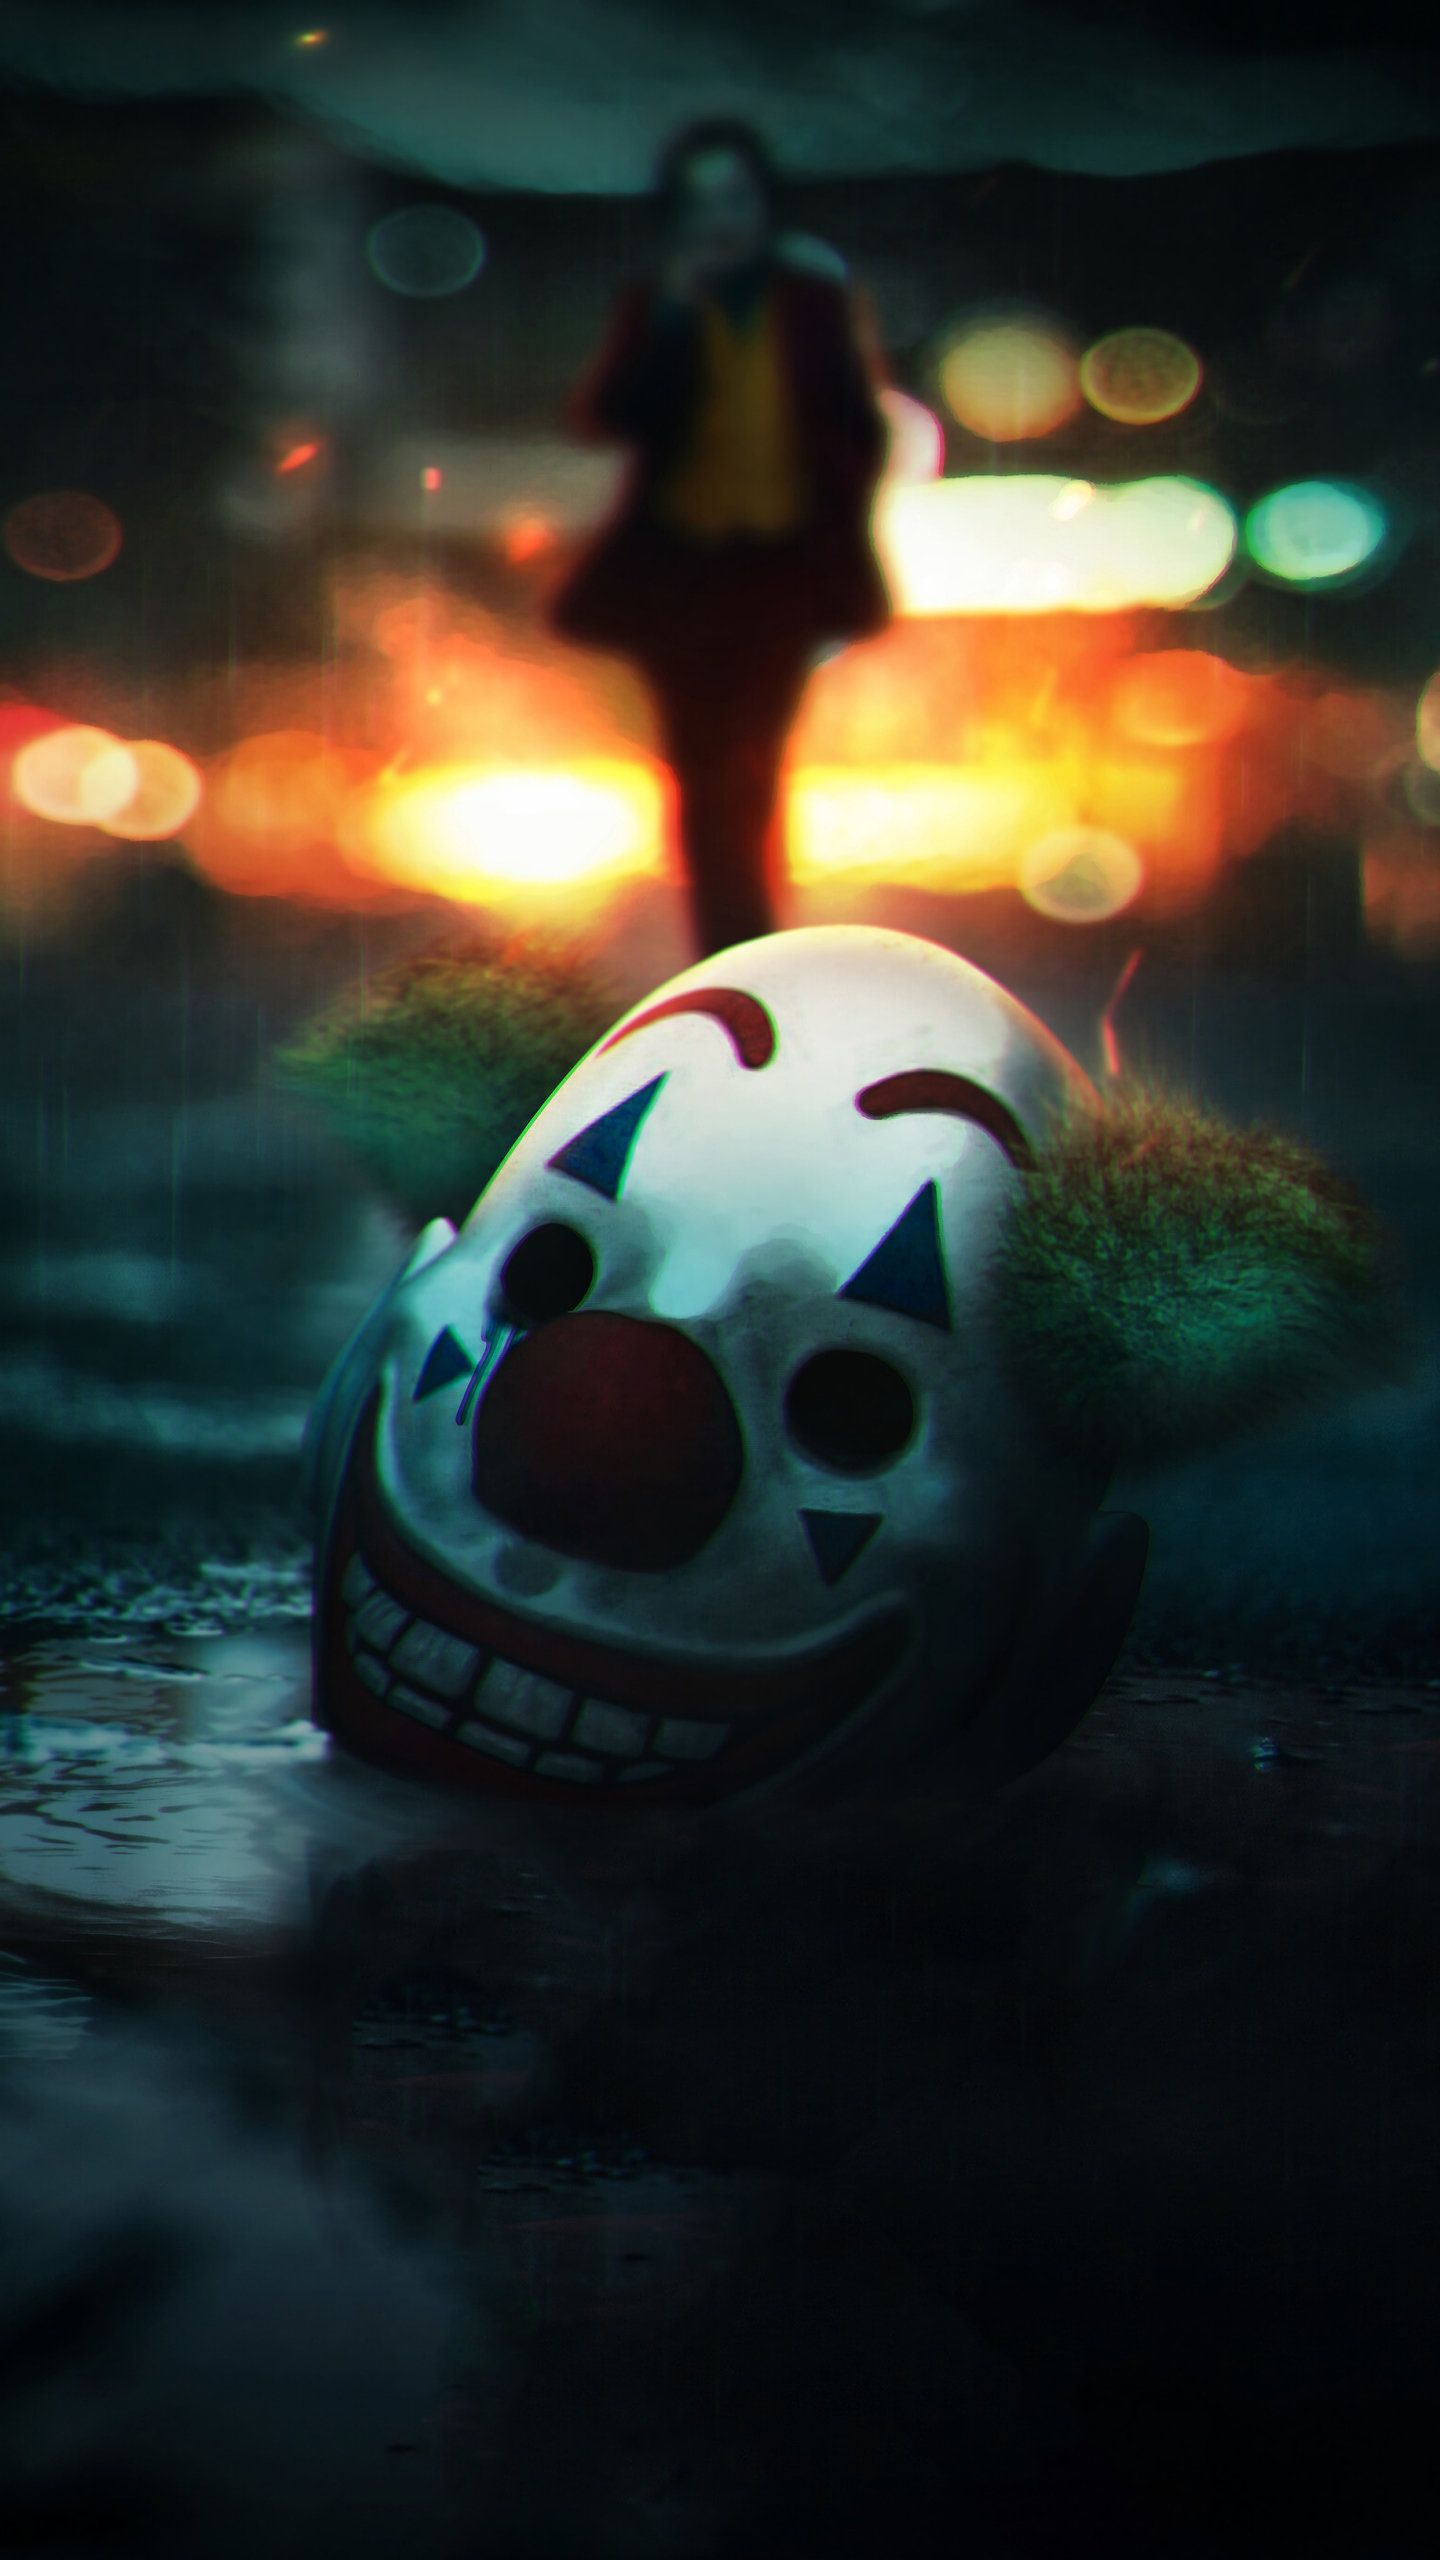 The Joker Mask Off, HD Movies Wallpapers Photos and